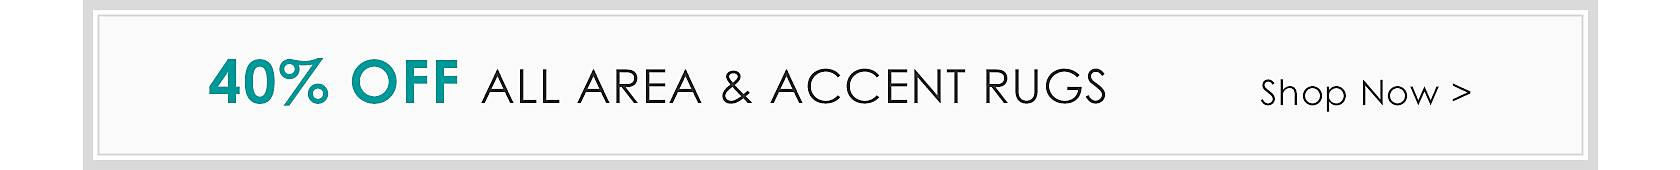 40% off all area and accent rugs - Shop Now